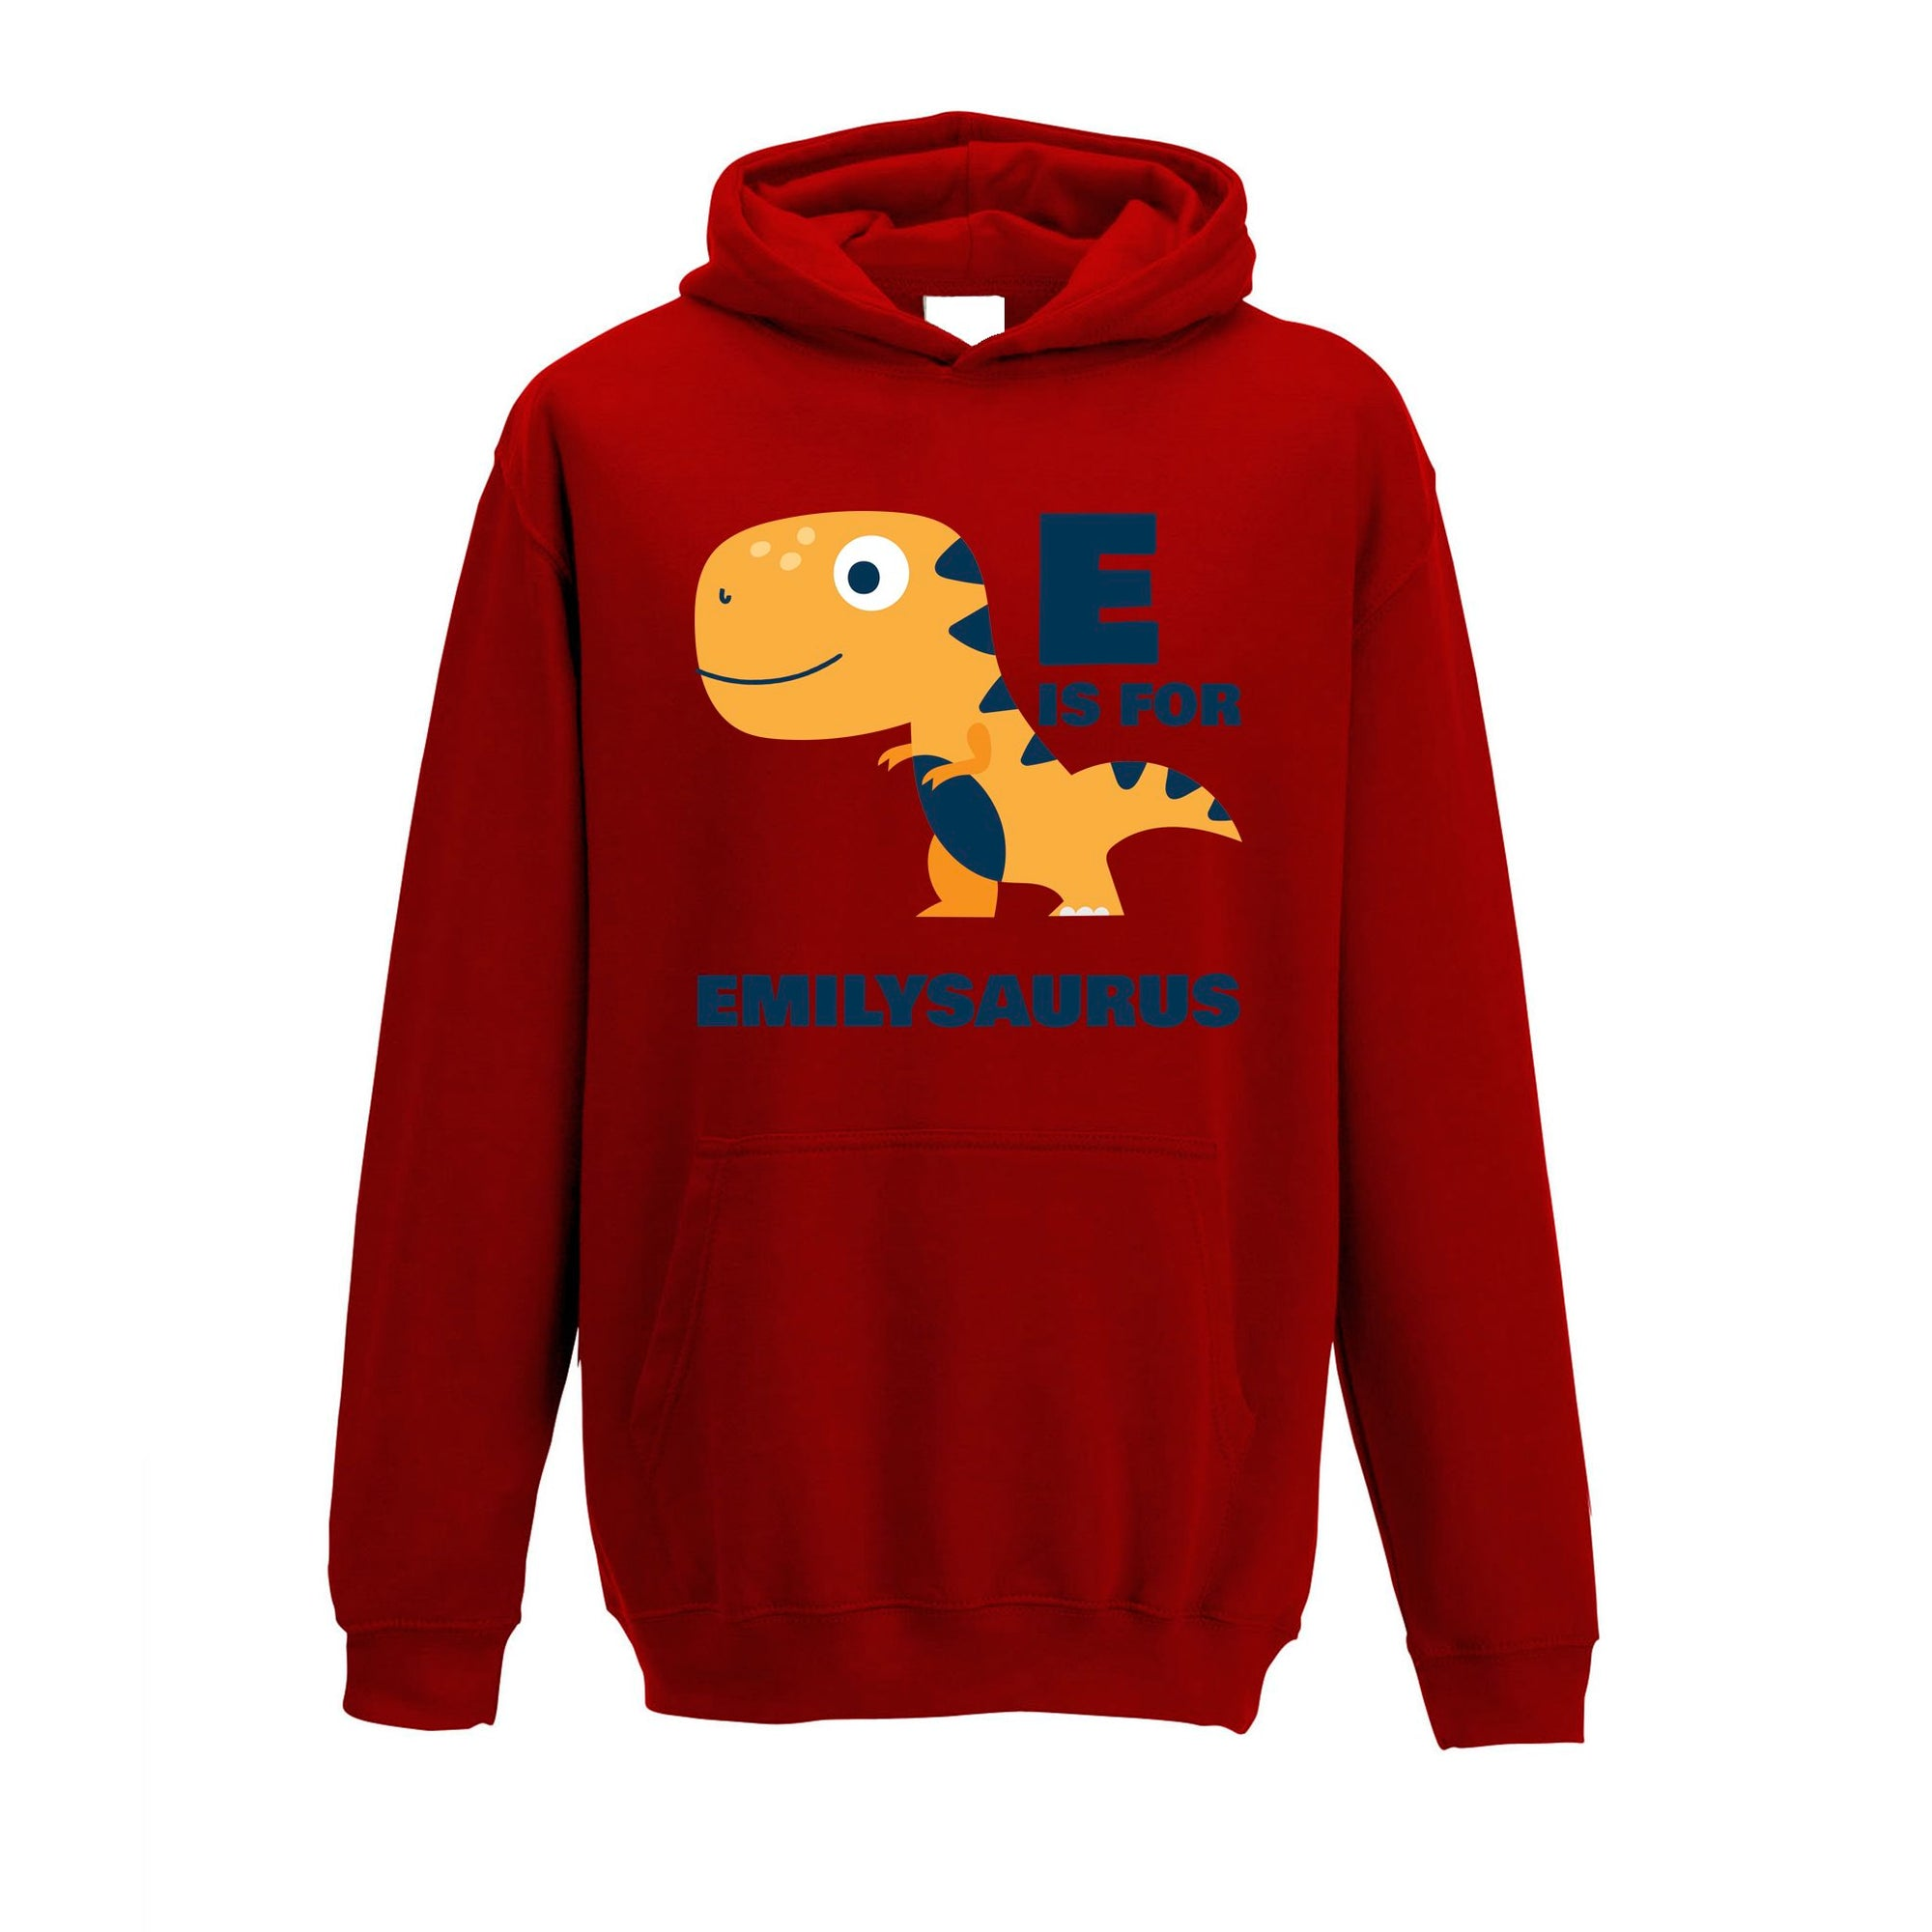 Dinosaur Kids Hoodie Emily Saurus Birth Name Childs